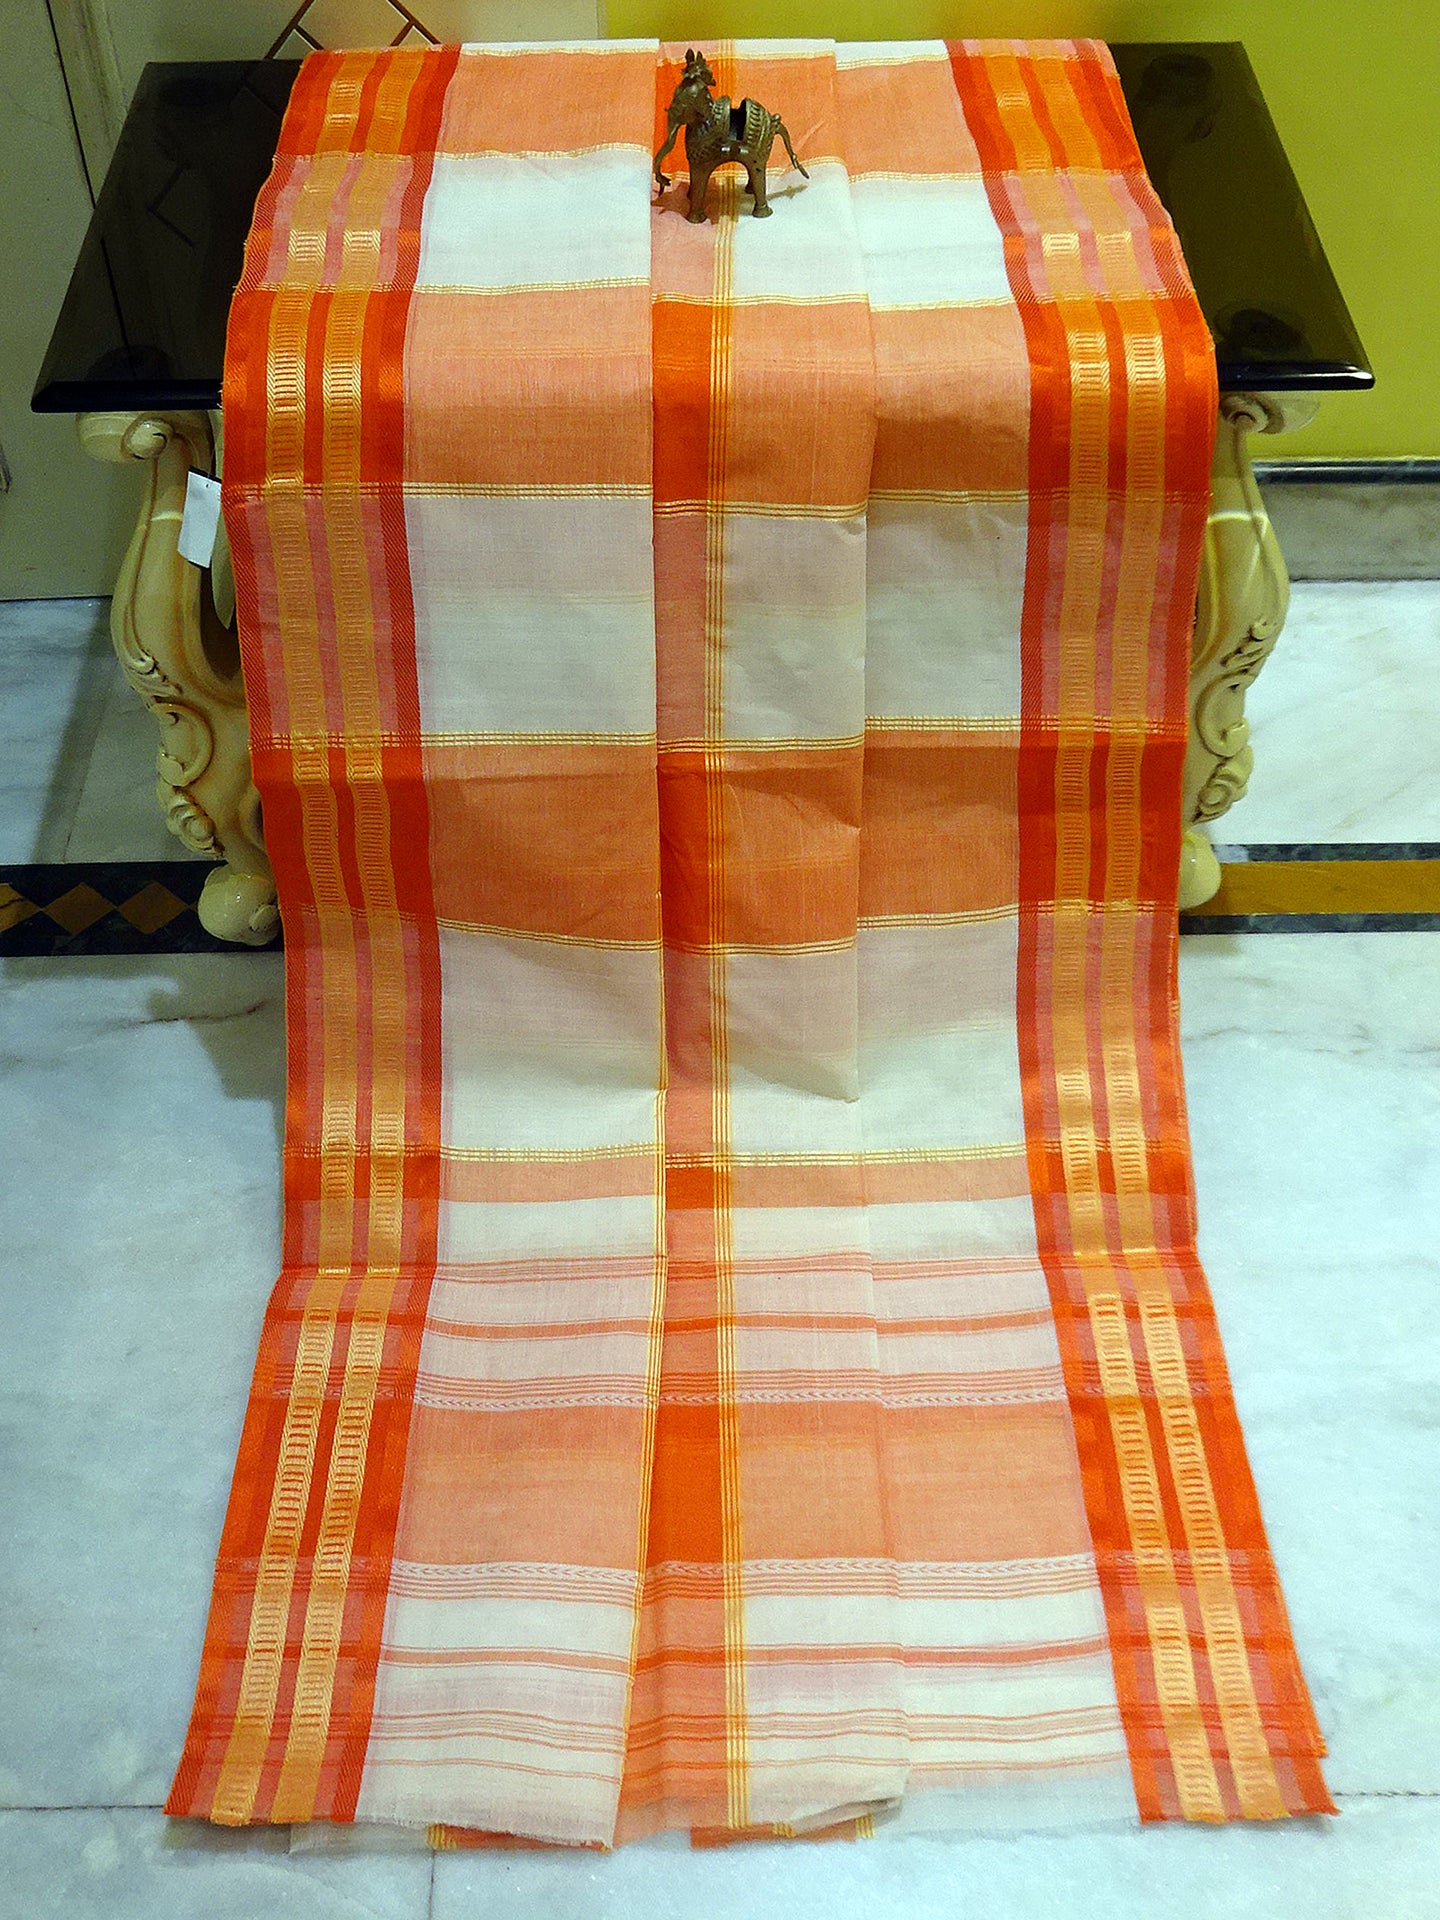 Bengal Handloom Ganga Jamuna Border Cotton Hazar Buti Saree in Vivid Cerulean Blue from Bengal Looms India